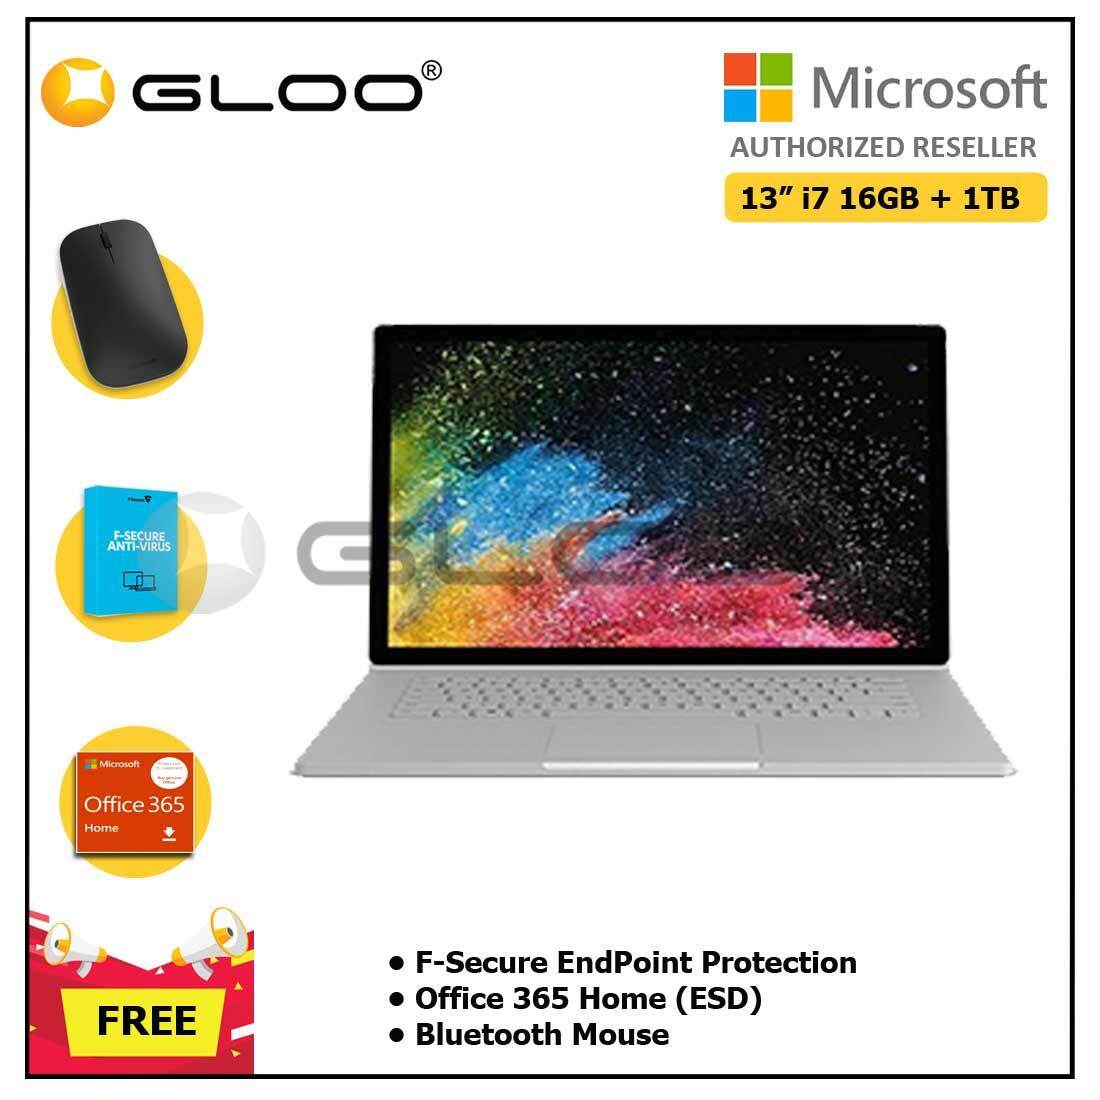 """Microsoft Surface Book 2 13"""" Core i7/16GB RAM - 1TB + F-Secure EndPoint Protection + Office 365 Home ESD + Bluetooth Mouse"""